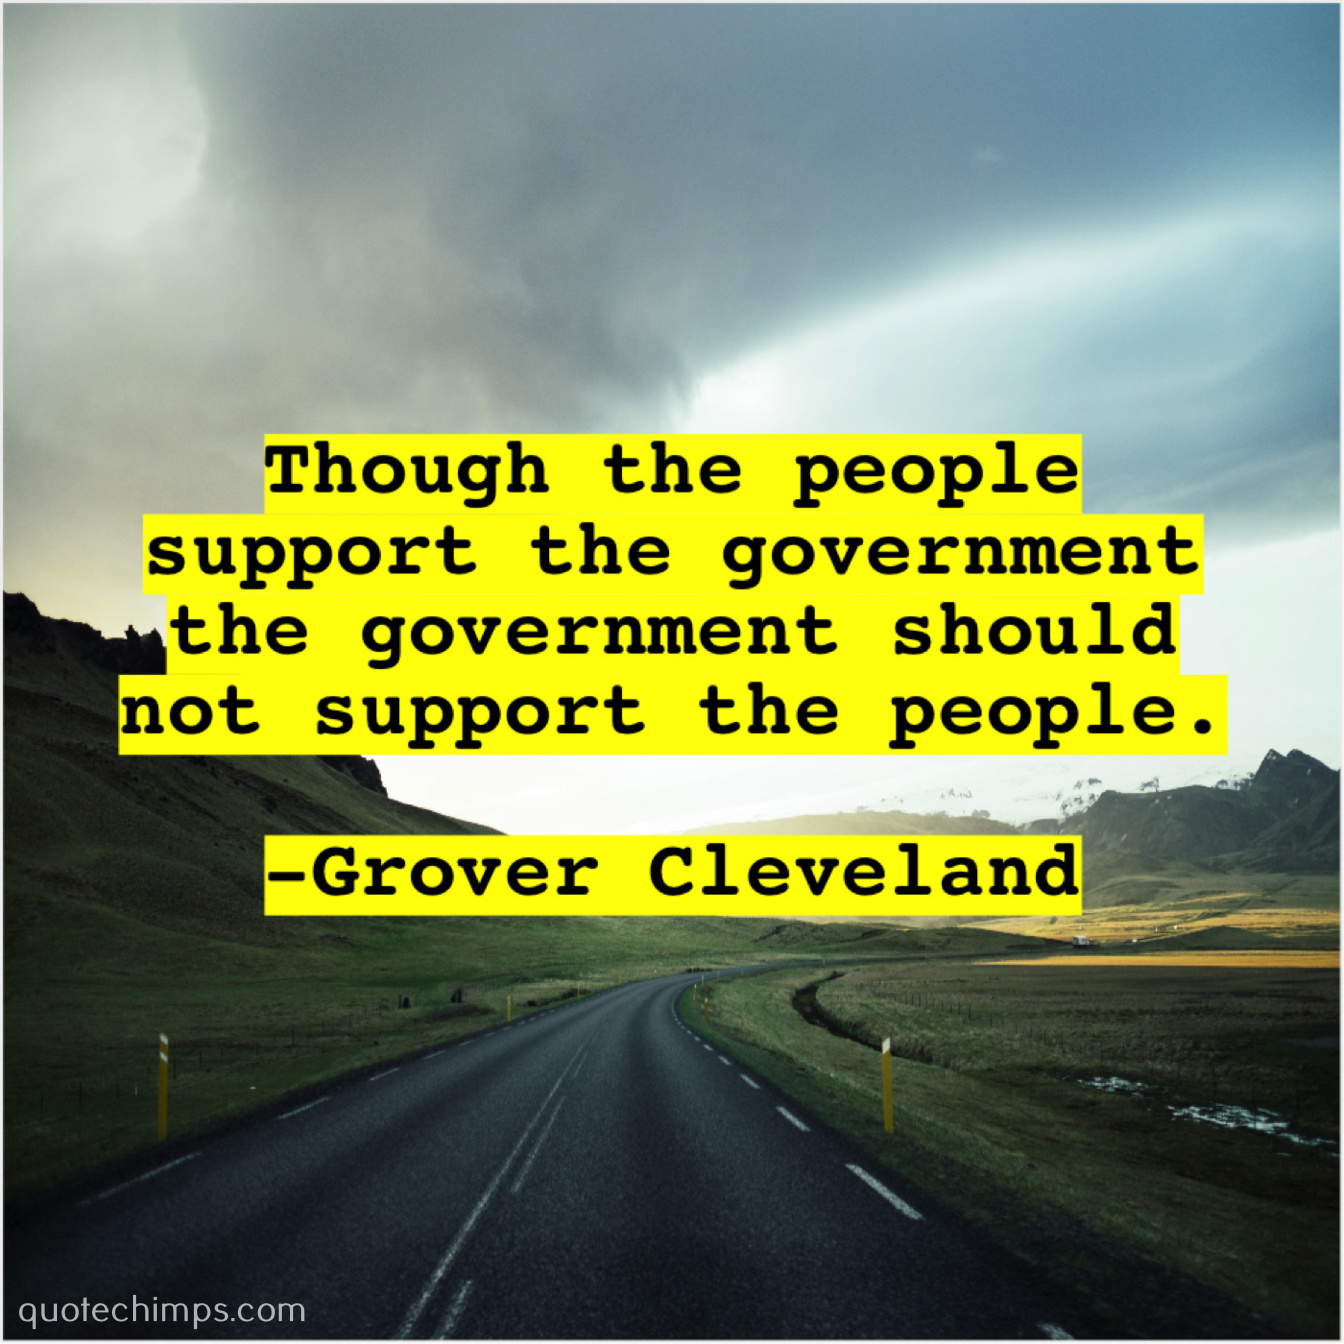 Grover Cleveland Quote Chimps